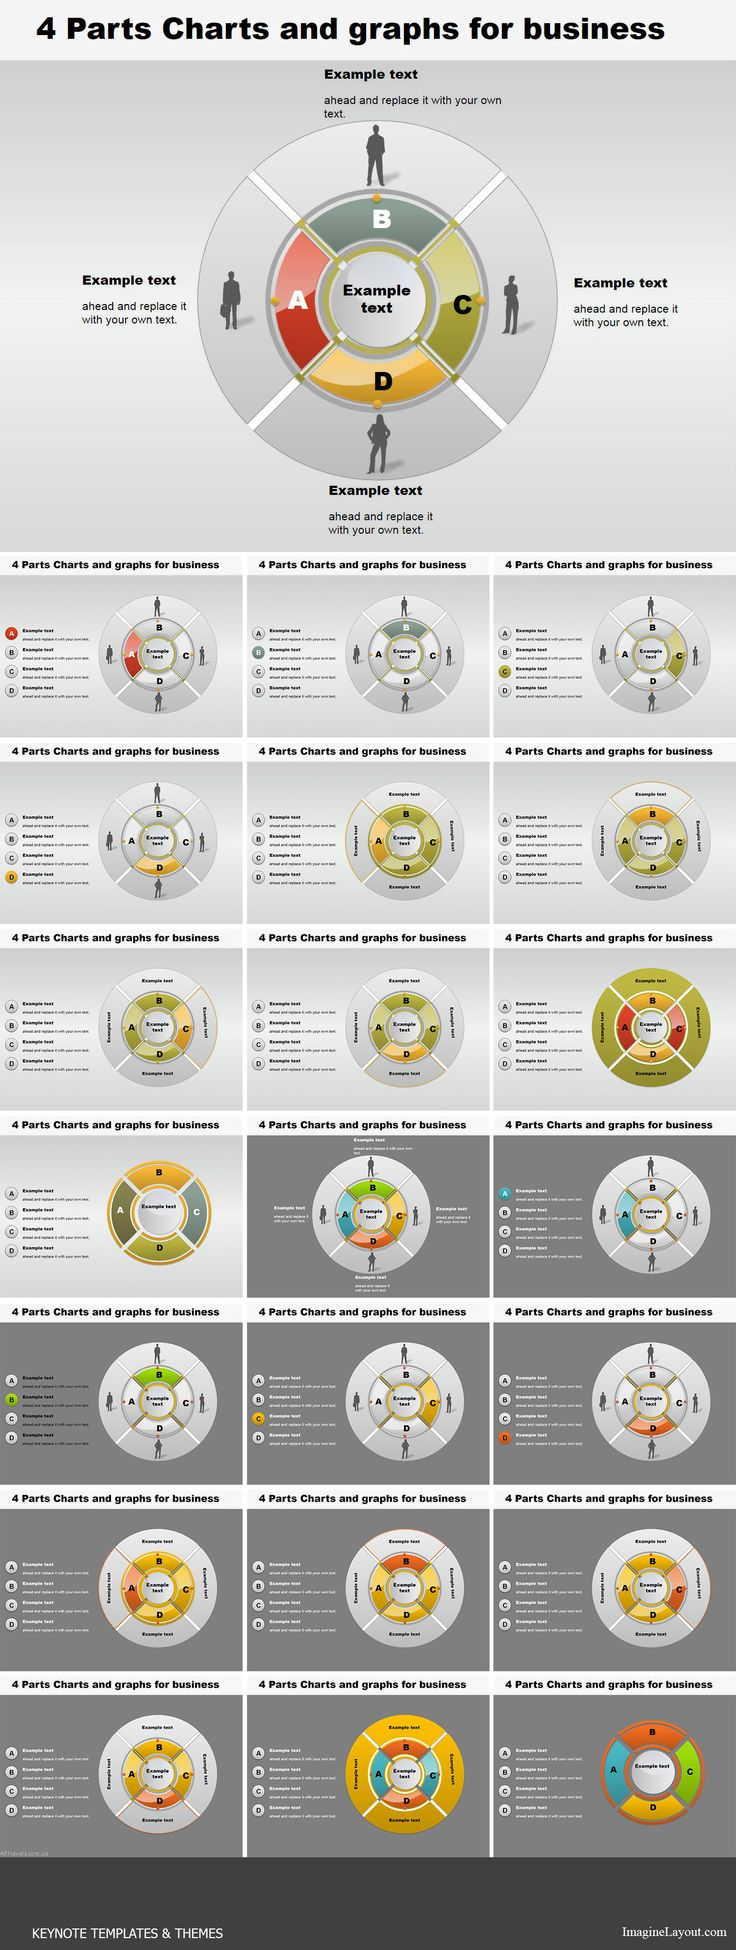 171 best Keynote Charts images on Pinterest   Keynote, Charts and ...